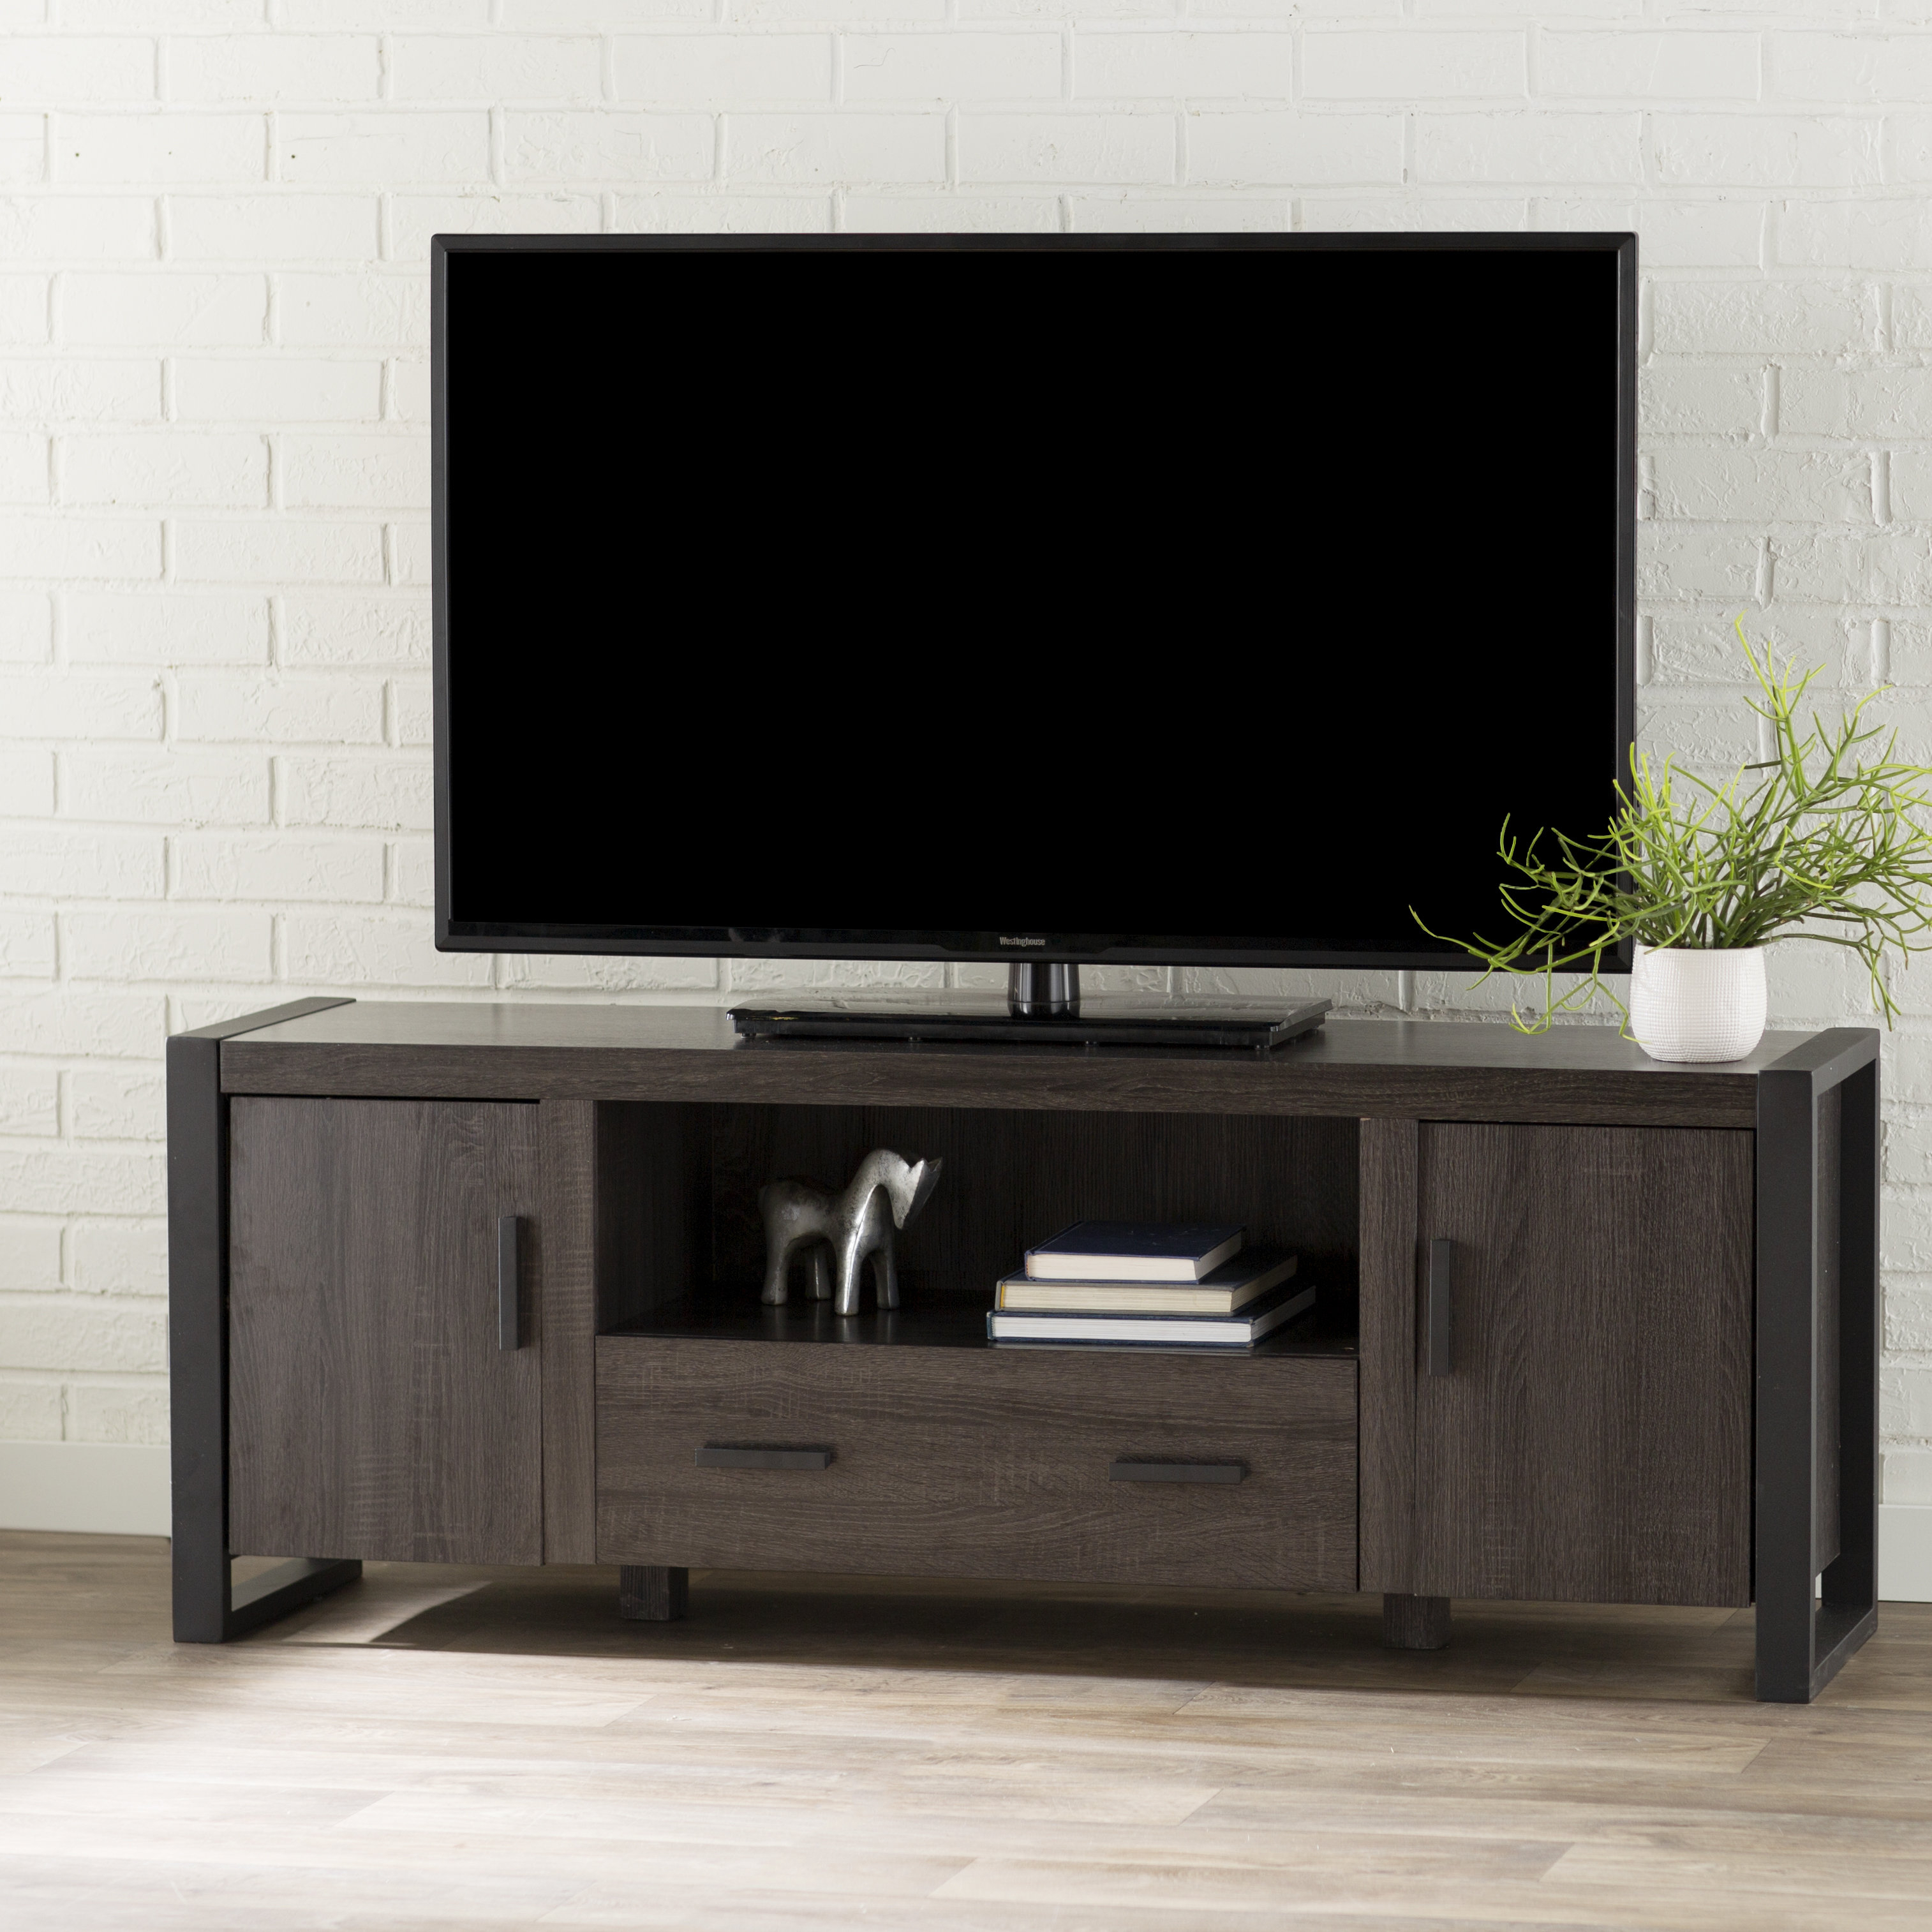 Modern Grey Tv Stands | Allmodern Throughout Sinclair White 54 Inch Tv Stands (View 15 of 30)